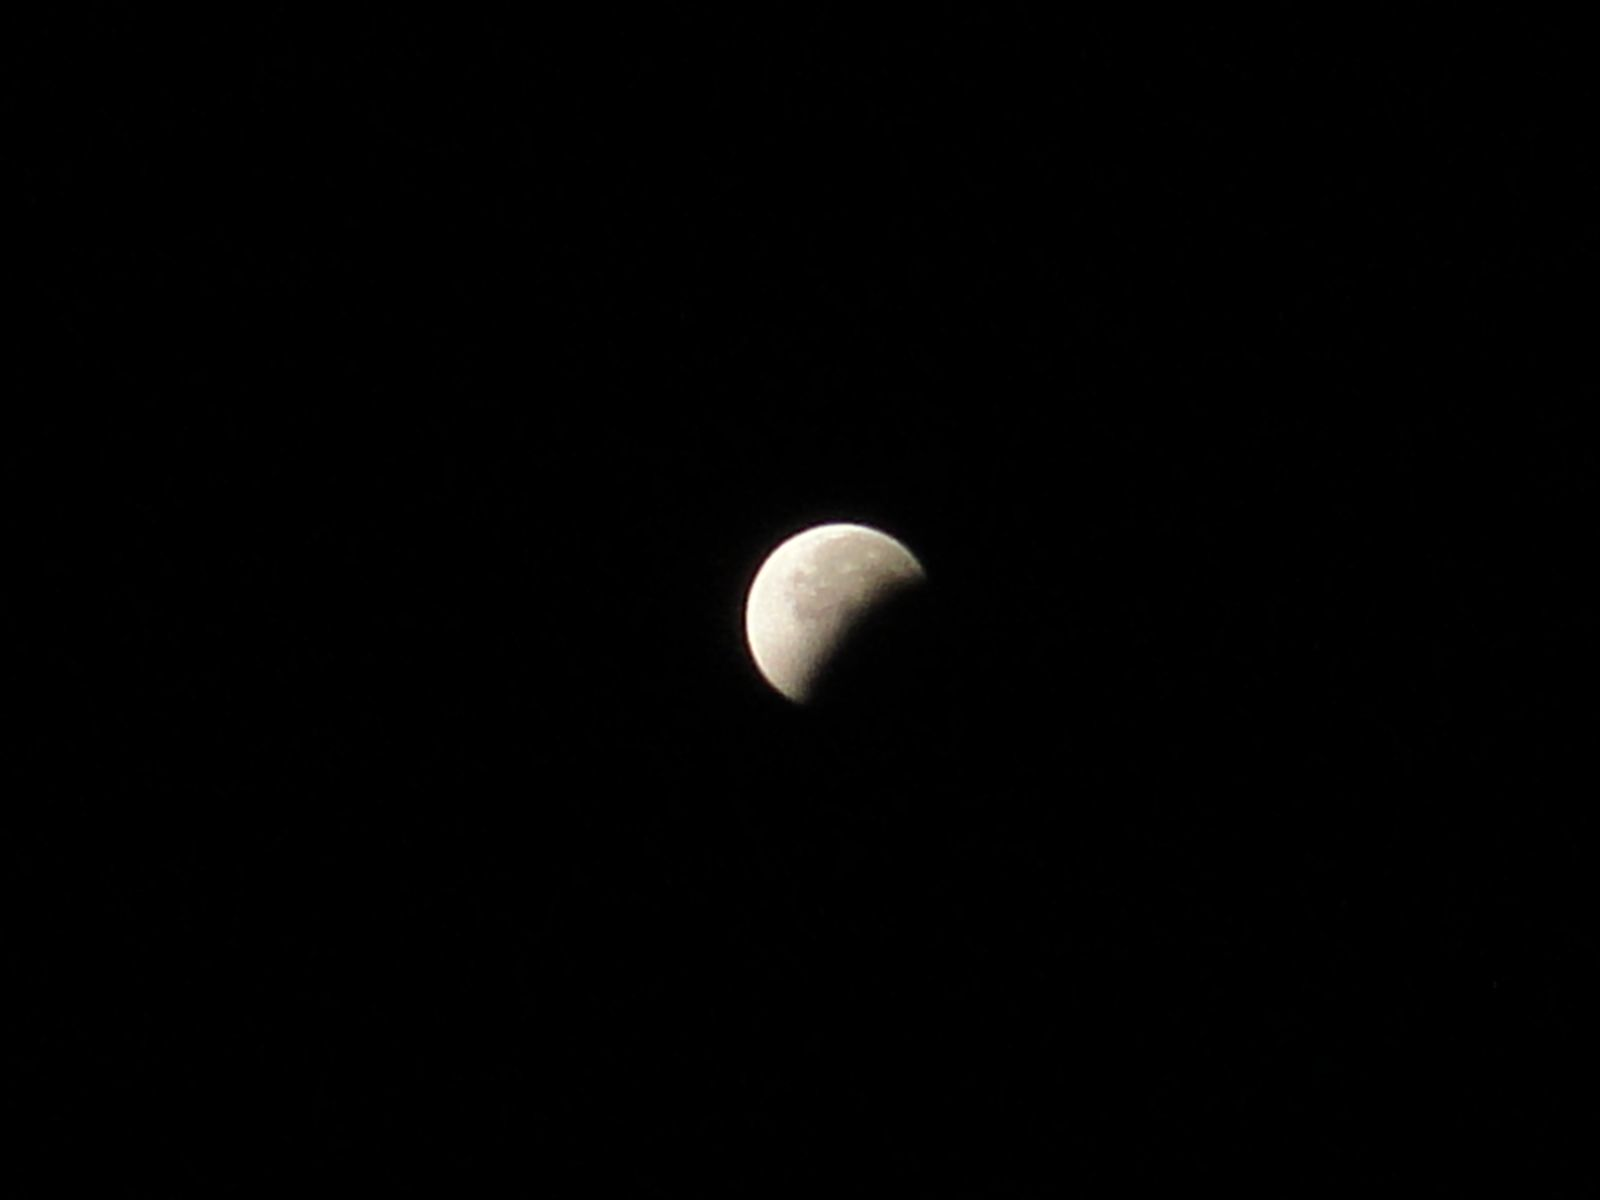 lunar_eclipse_176.jpg